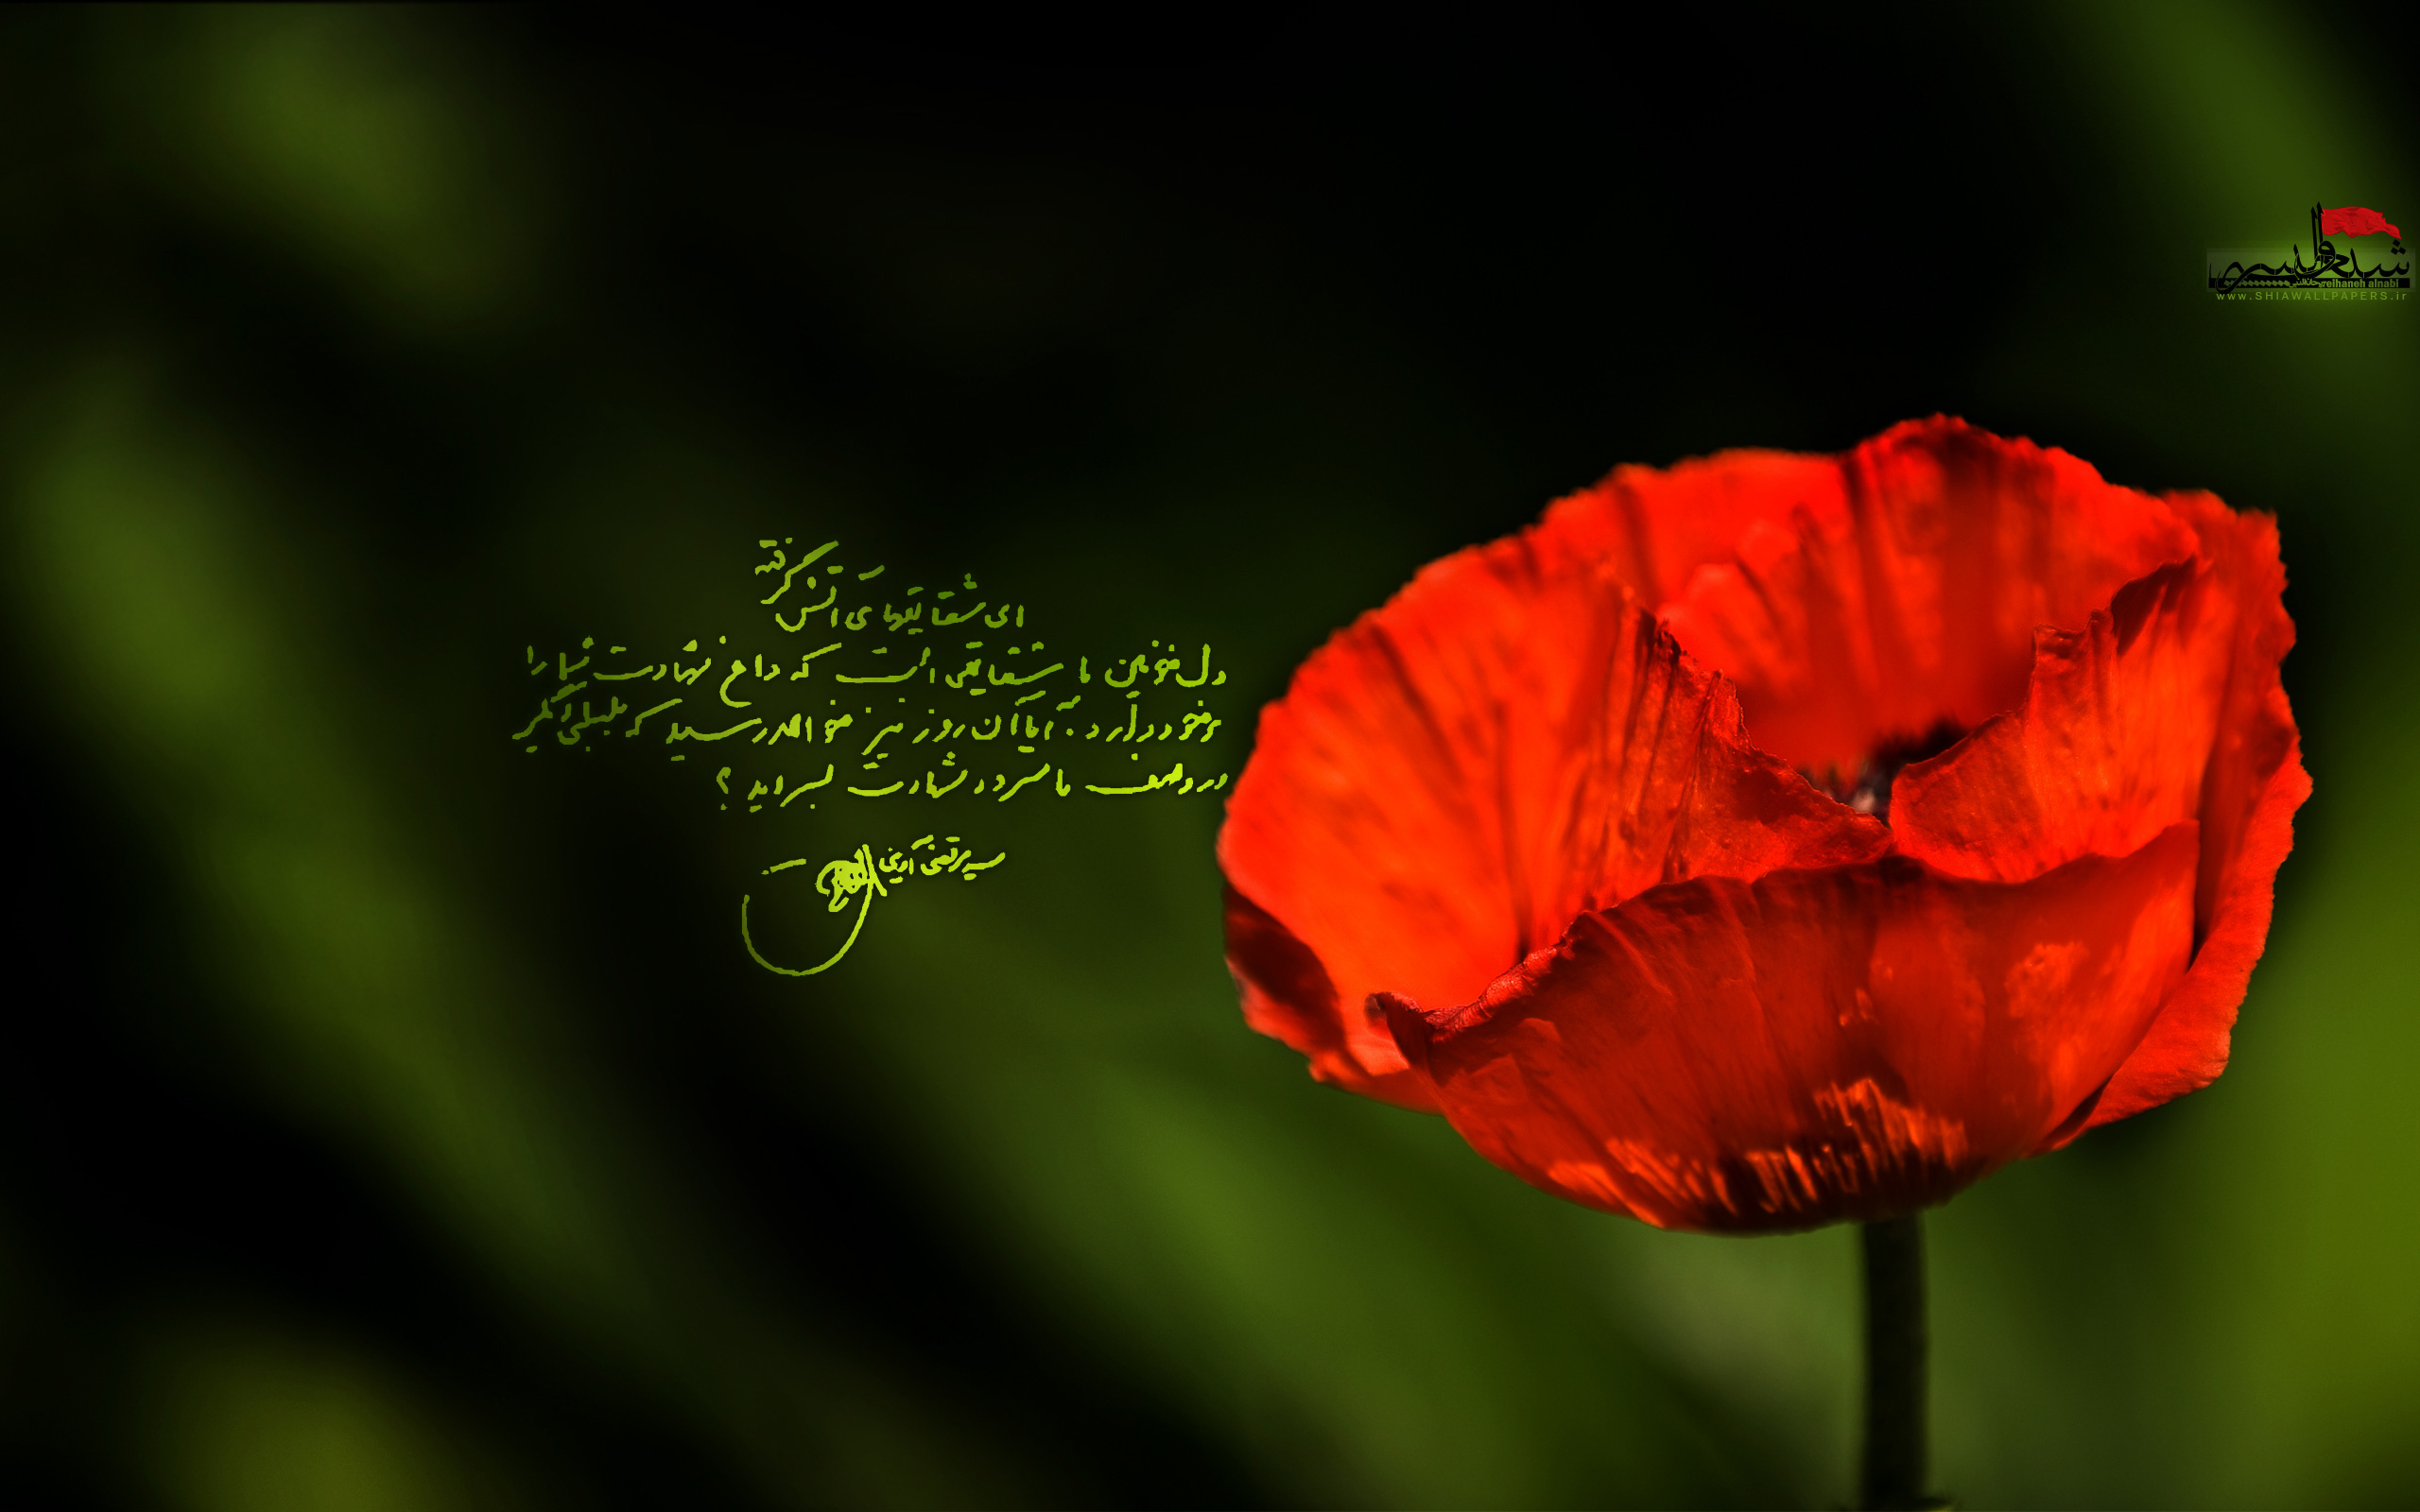 http://shiawallpapers.ir/wp-content/uploads/2010/11/shaghayegh-BY-shiawallpapers1.jpg